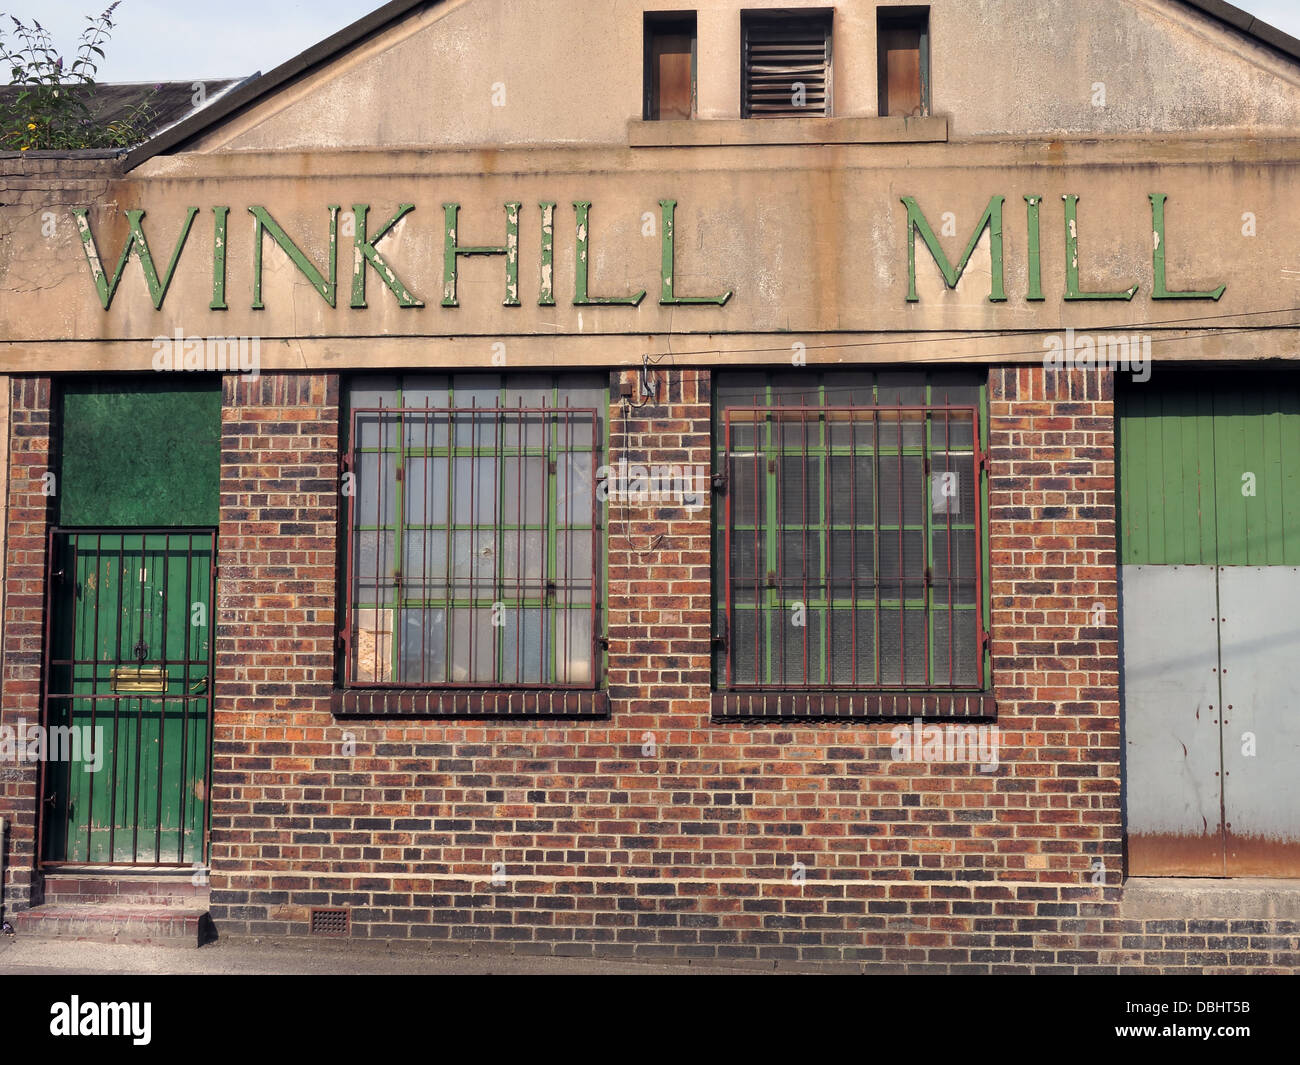 Winkhill Mill, Stoke on Trent, Staffs, UK - Stock Image